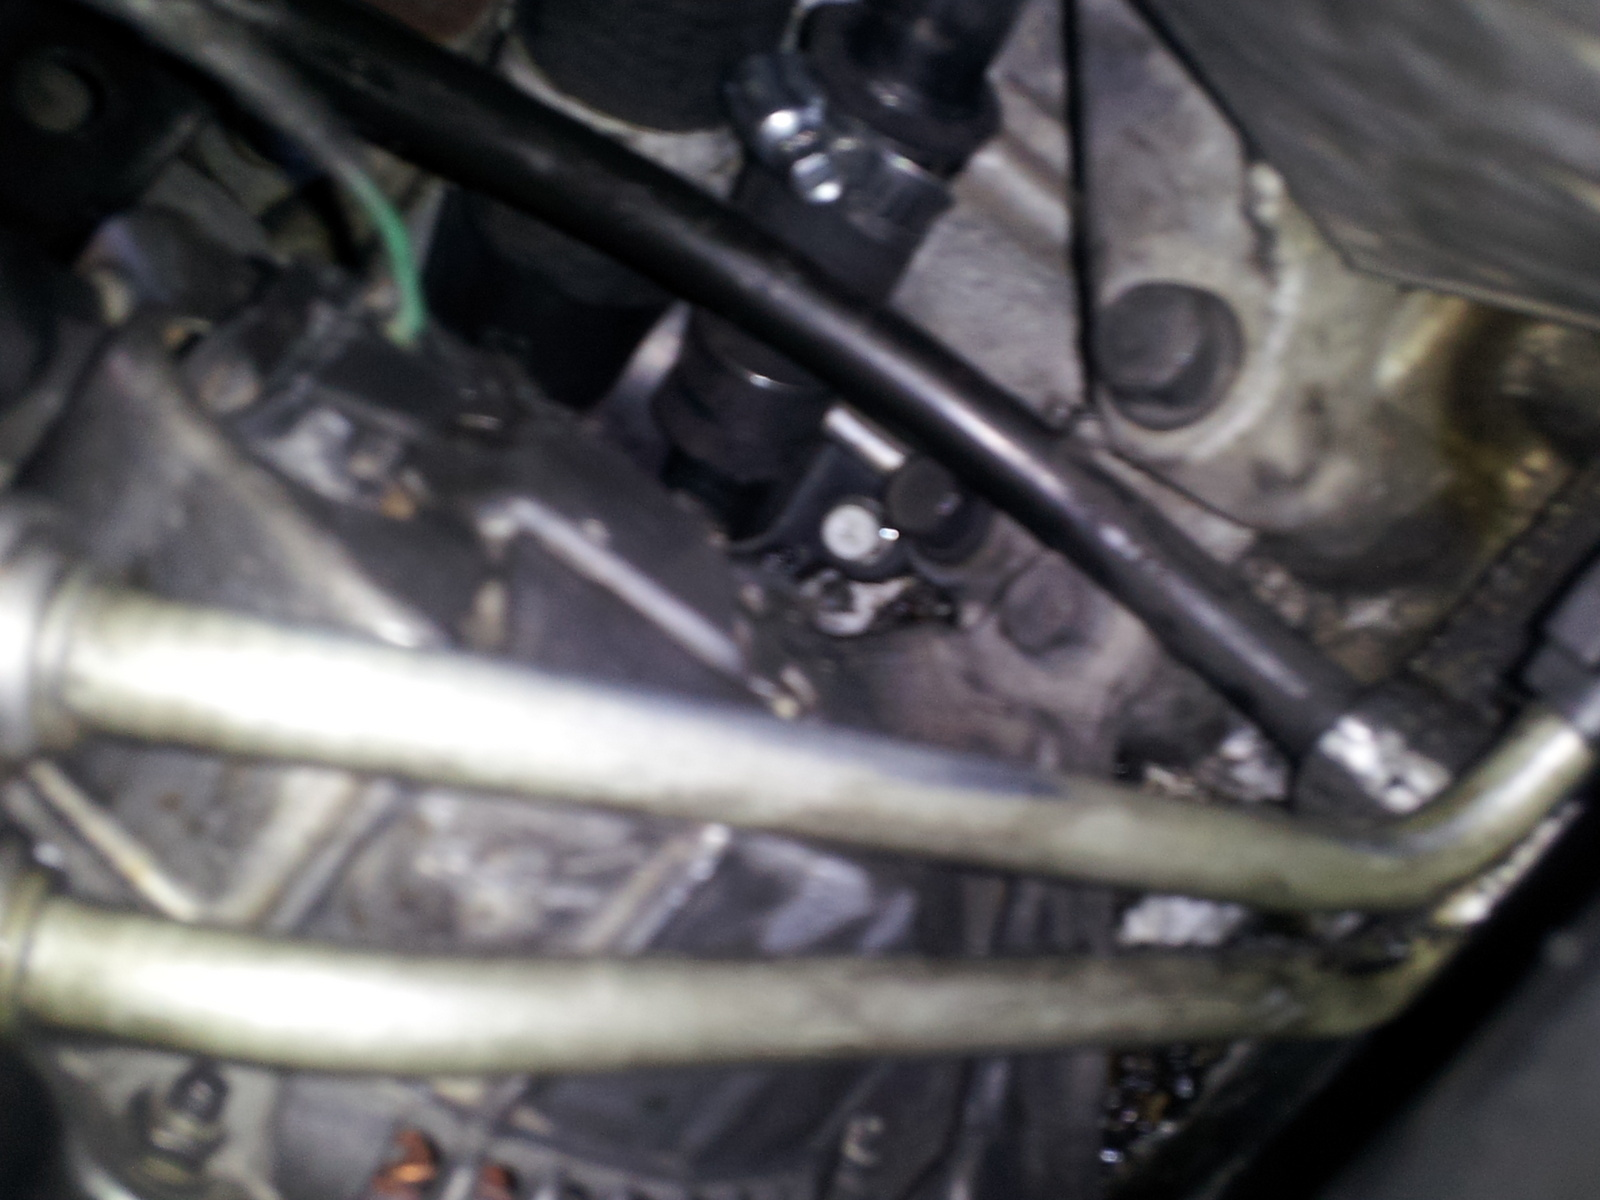 Viewtopic likewise Dodge Ram 3500 Thermostat Location as well Keeping 3 5 Alive Service Notes Chryslers V6 Engine as well Message Delete likewise 1965b Replace Thermostat 2001 4 7l Dodge Durango. on thermostat location on 2008 dodge nitro